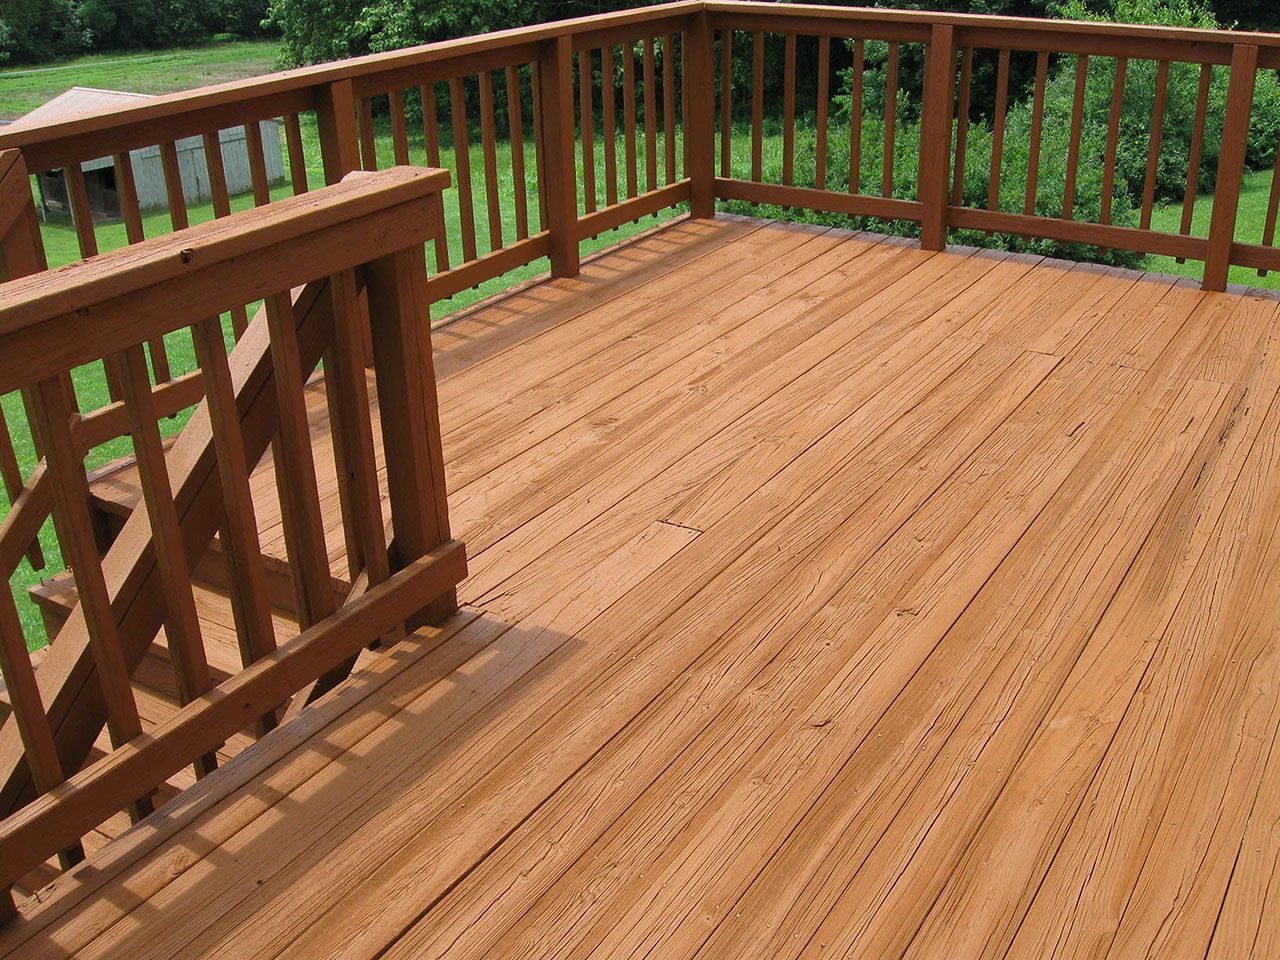 Chestnut behr solid color click to close fence stain pinterest chestnut behr solid color click to close fence stainoutdoor nvjuhfo Image collections